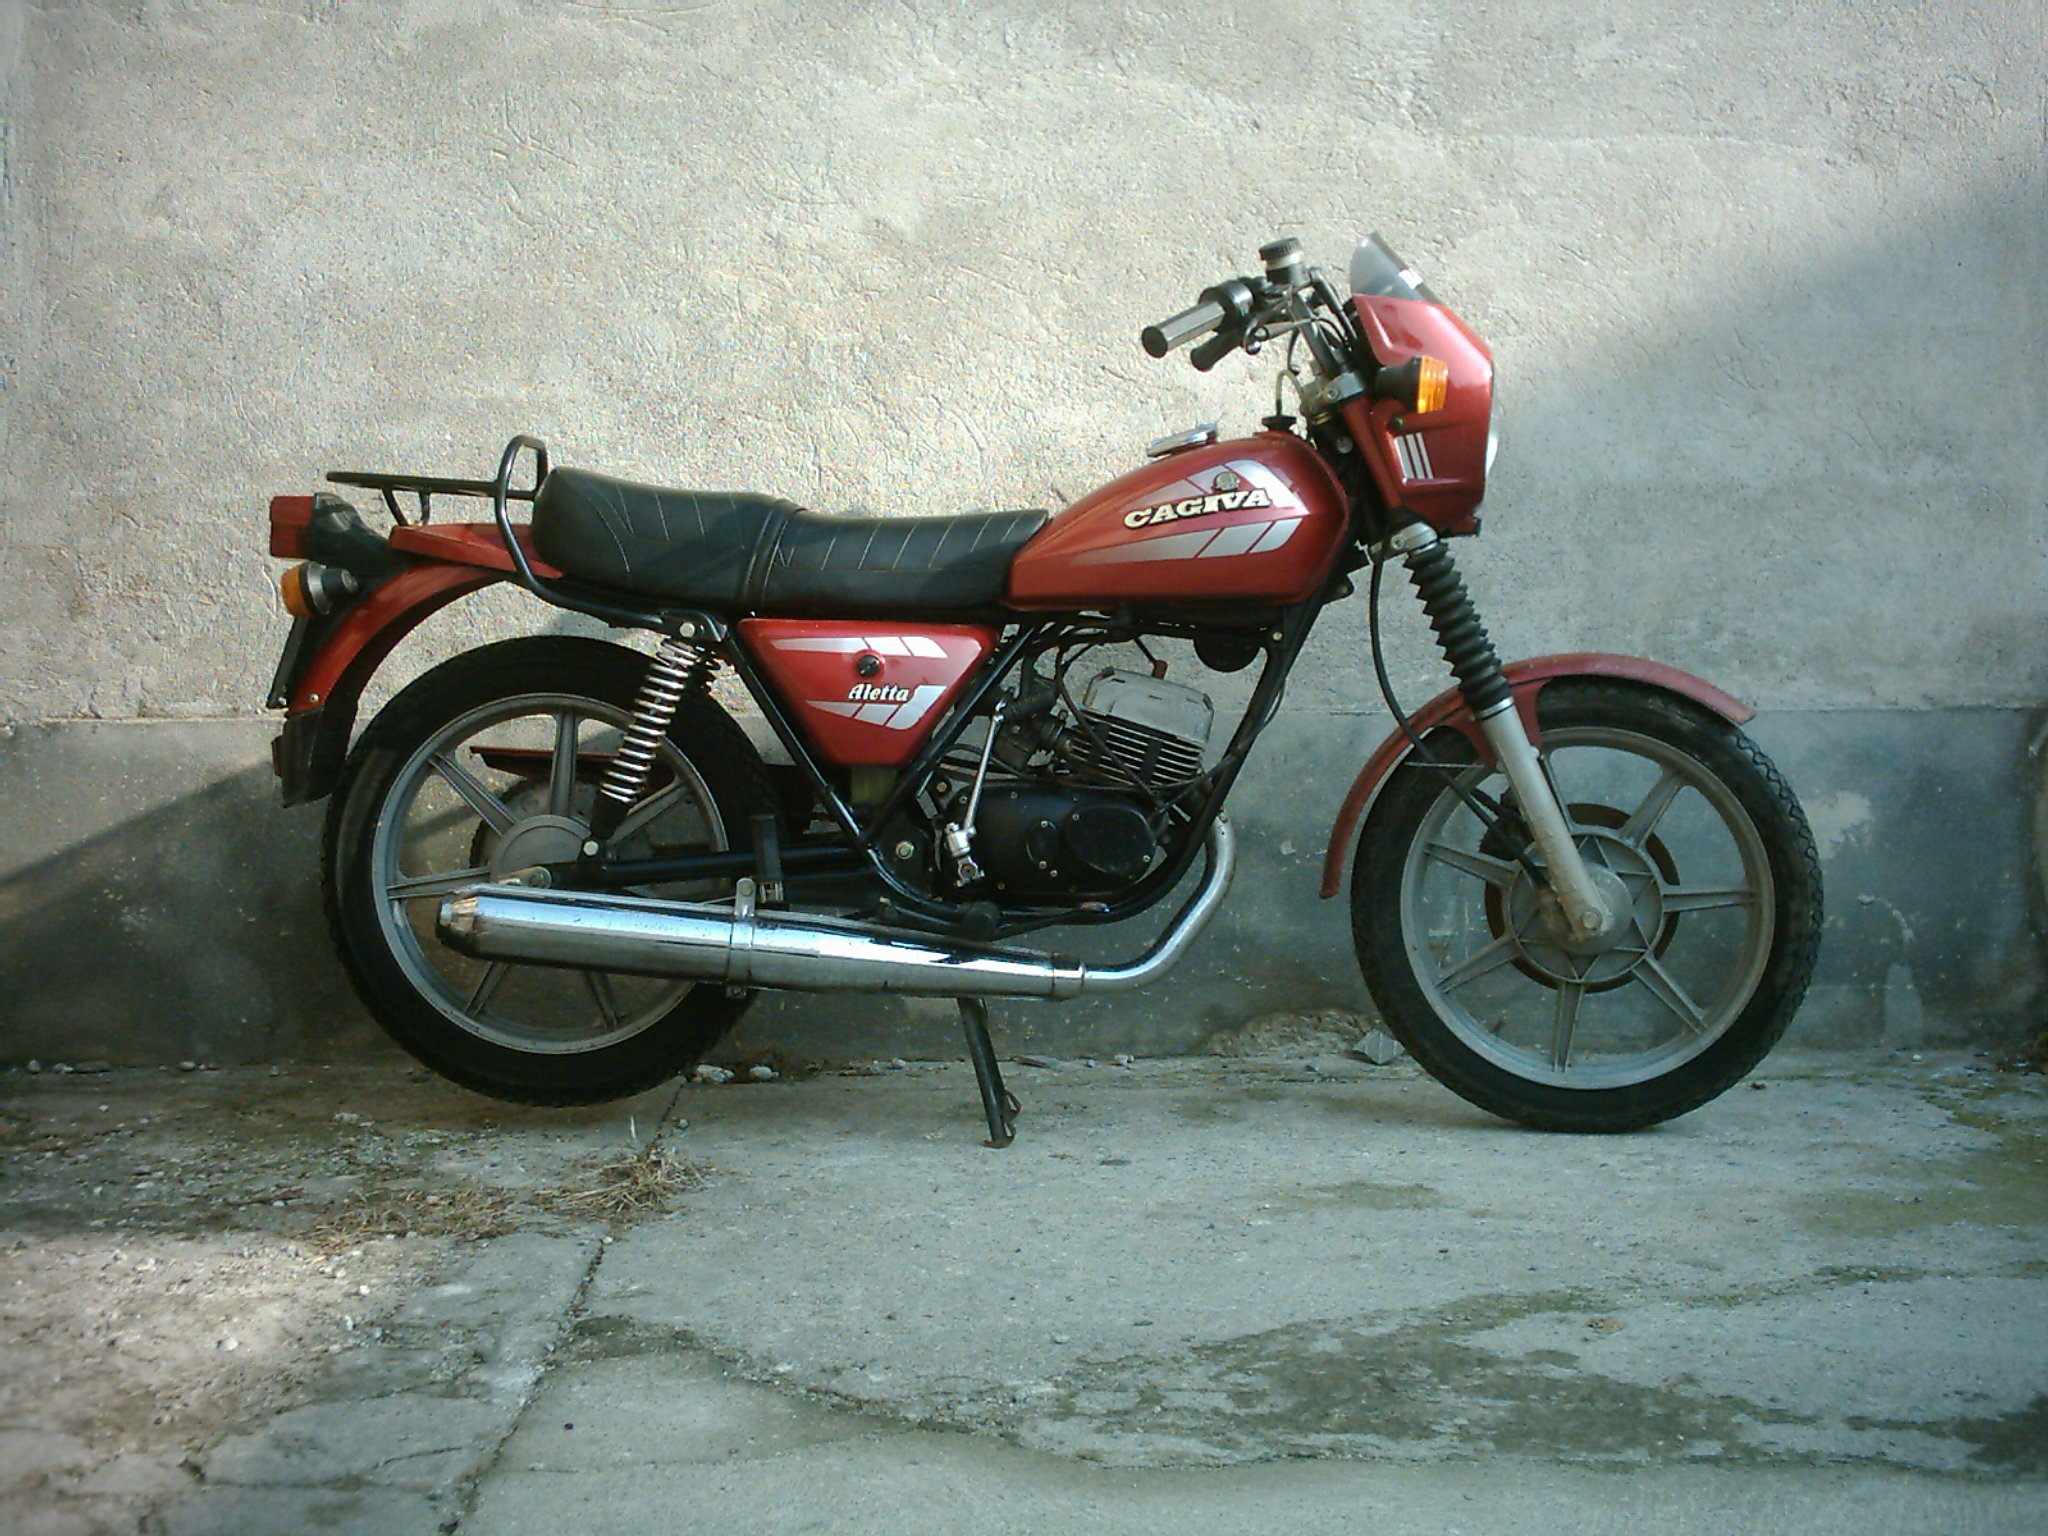 Cagiva SX 250 1983 images #67993